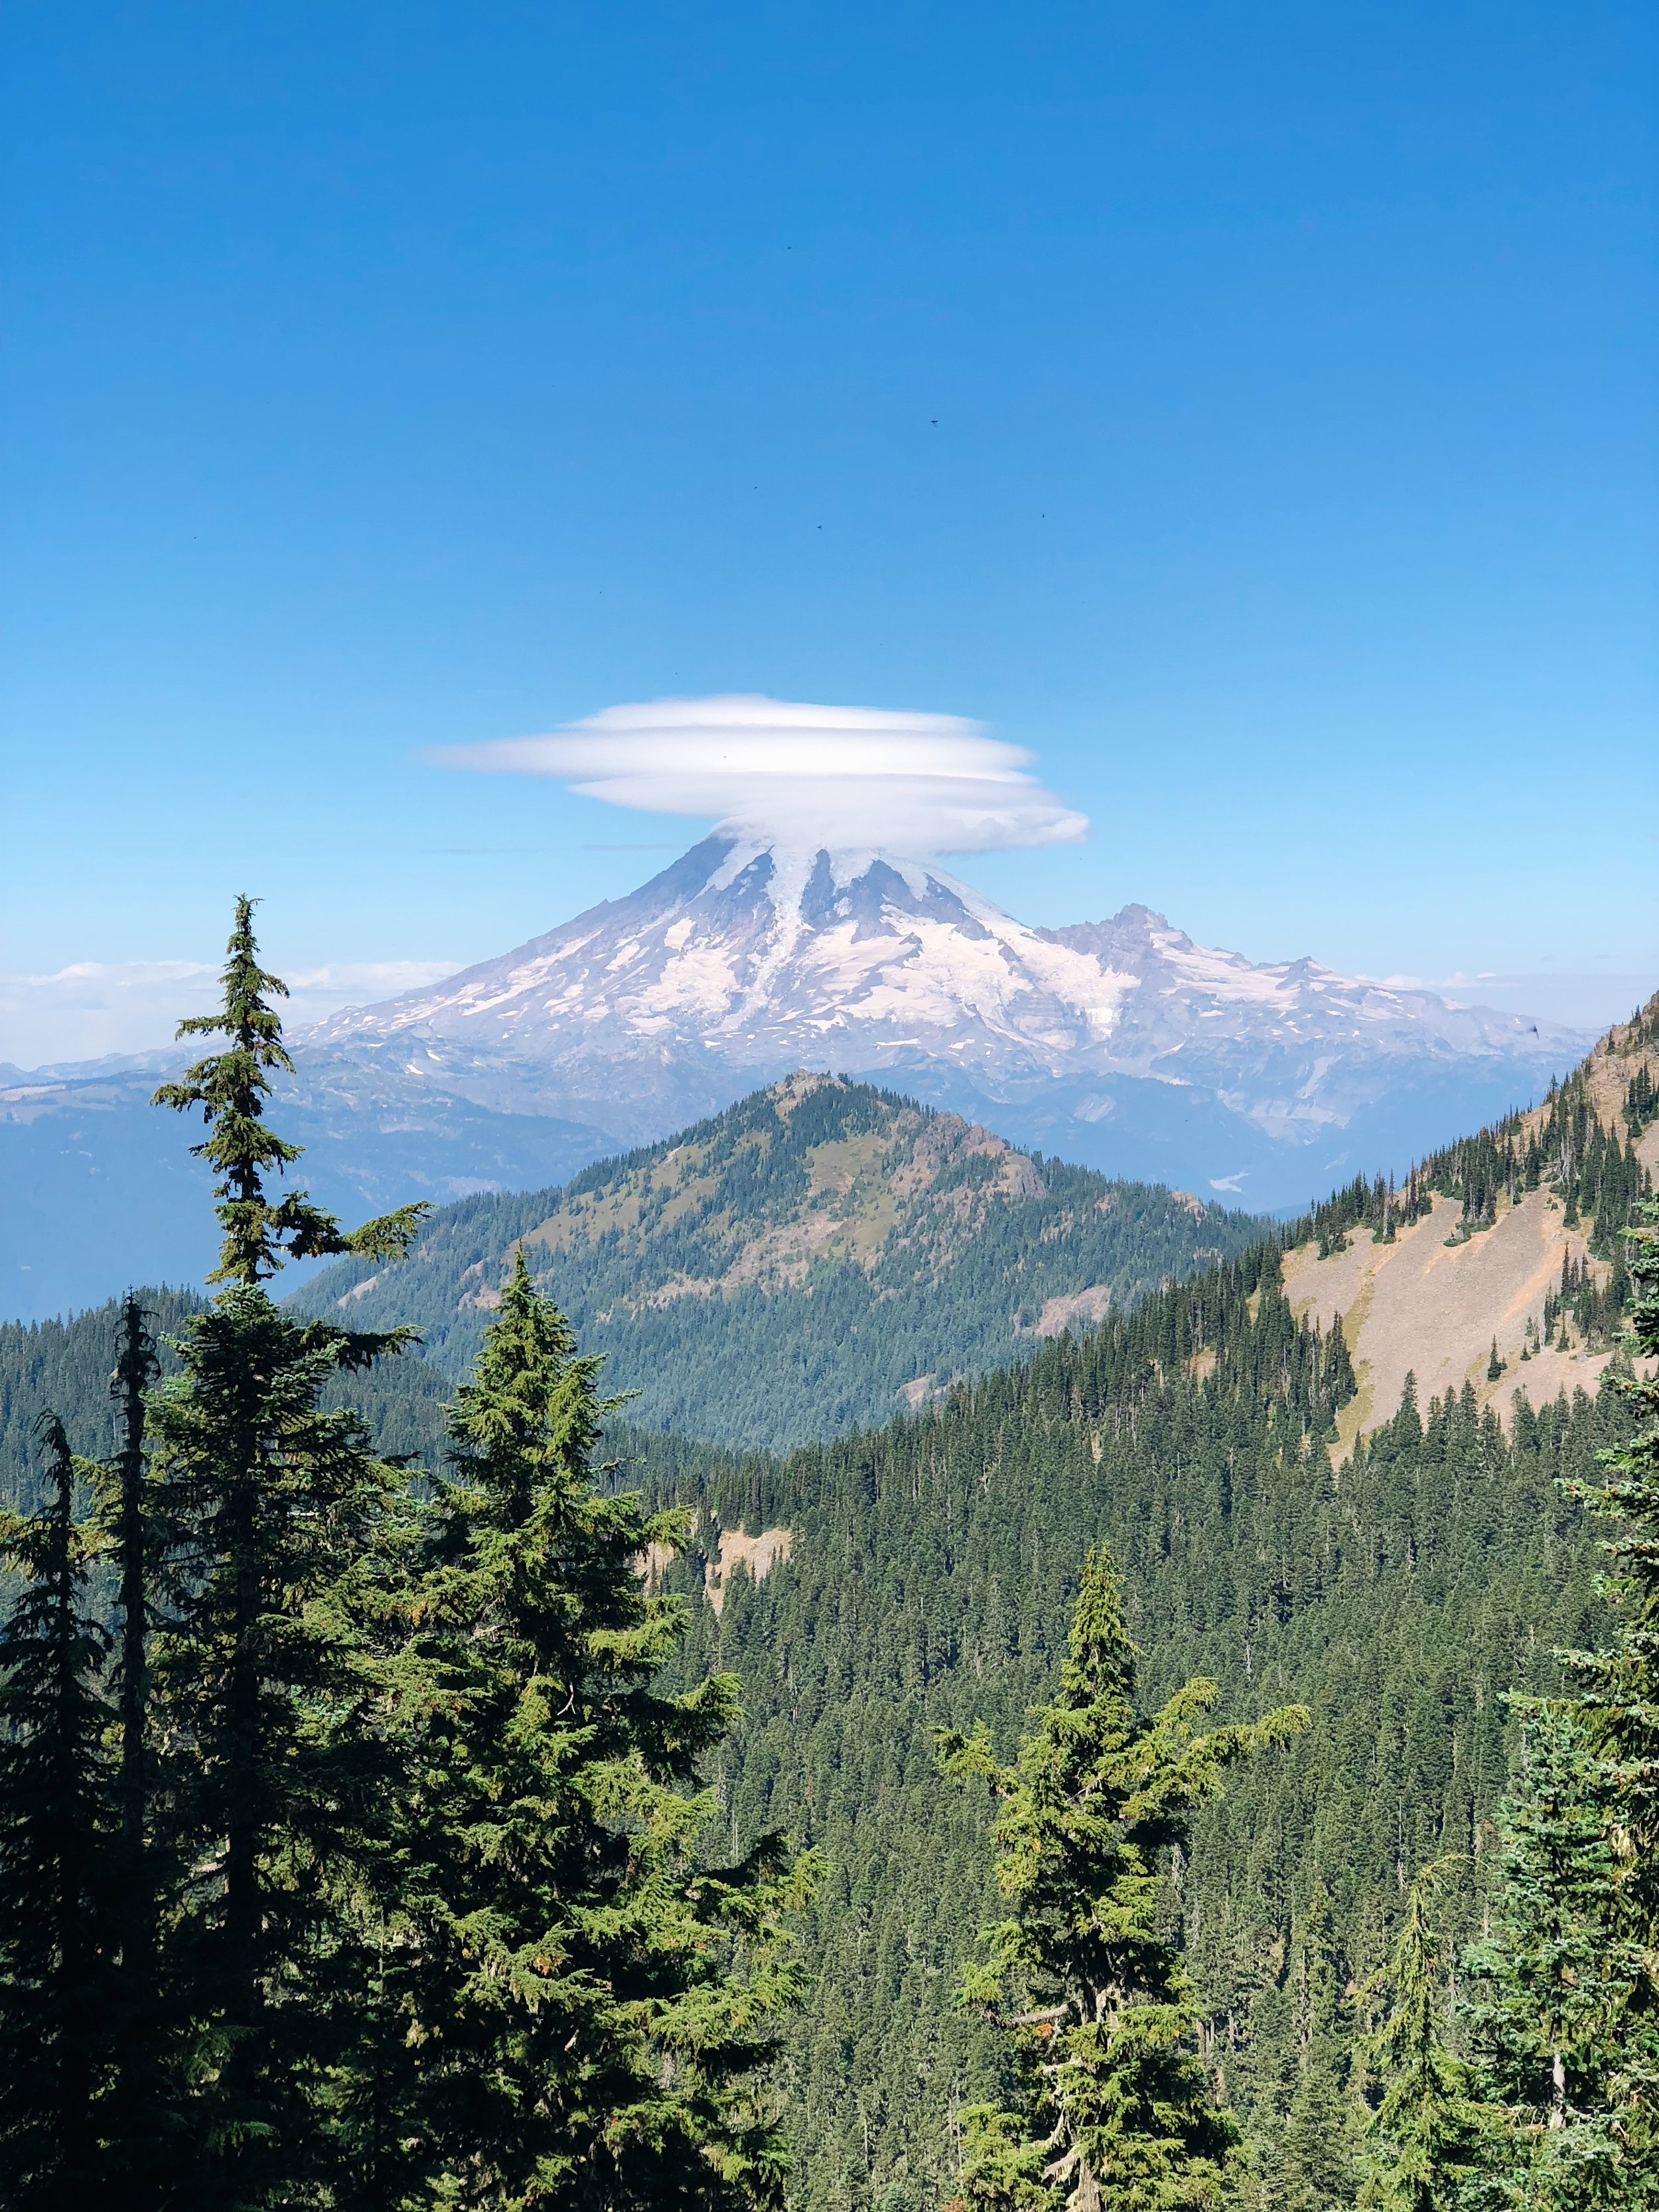 Watching the changing lenticular cloud formations over Rainier was a highlight of the day